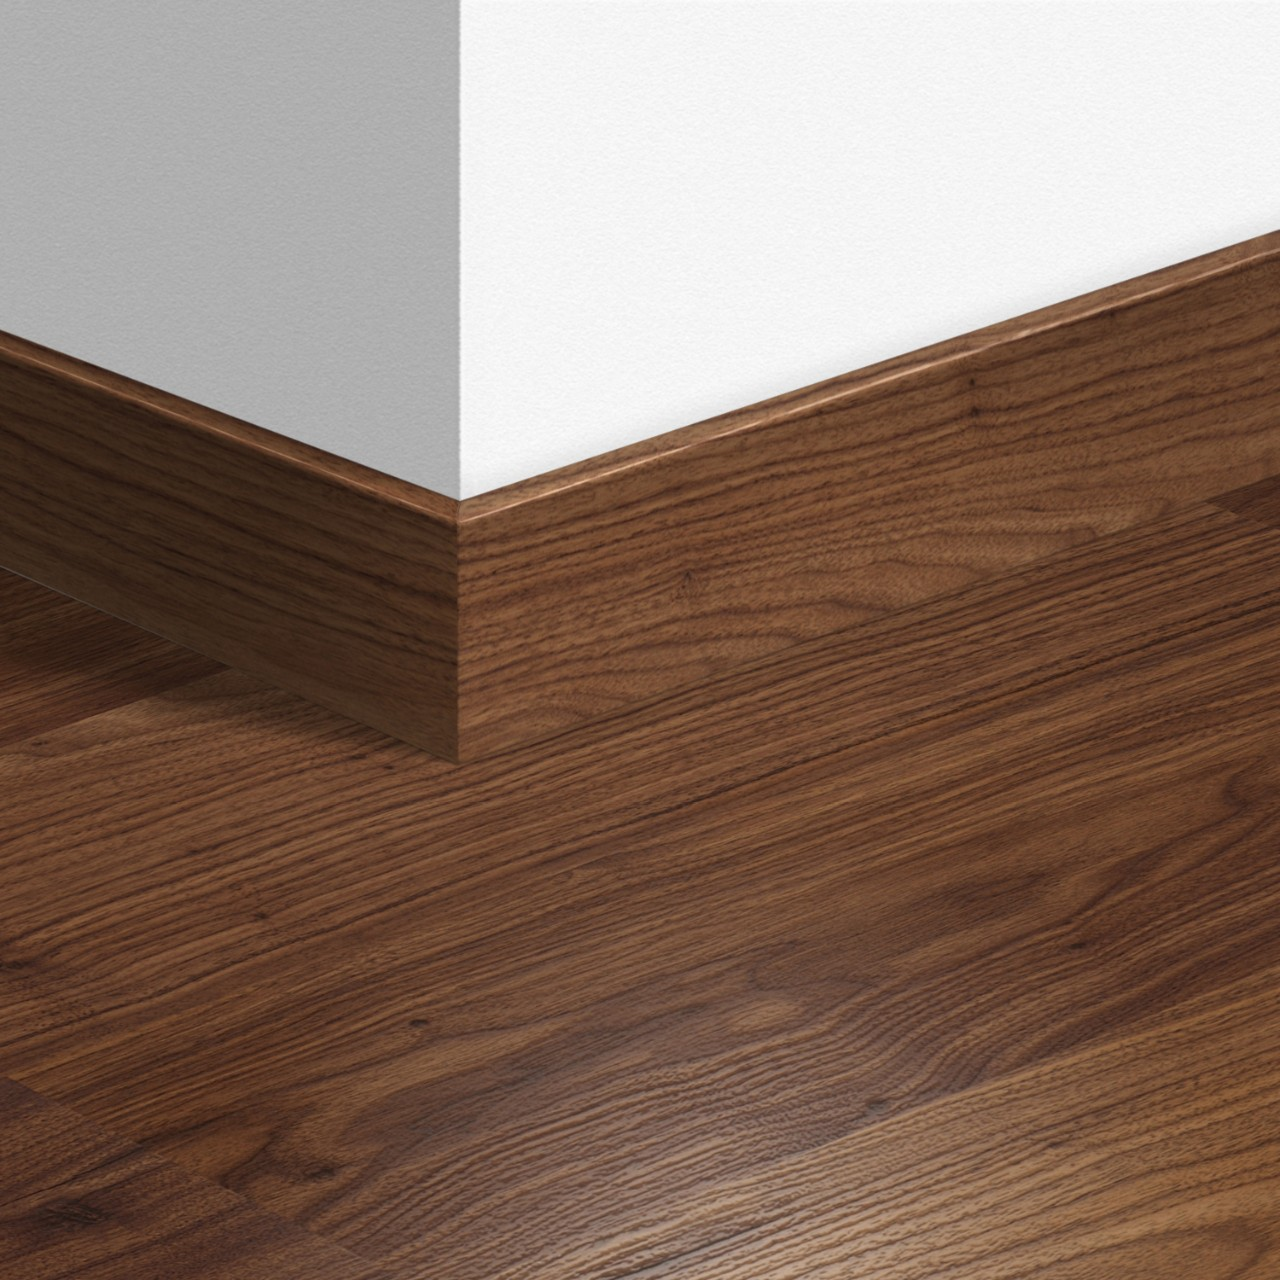 QSPSKR Laminate Accessories Oiled walnut QSPSKR01043